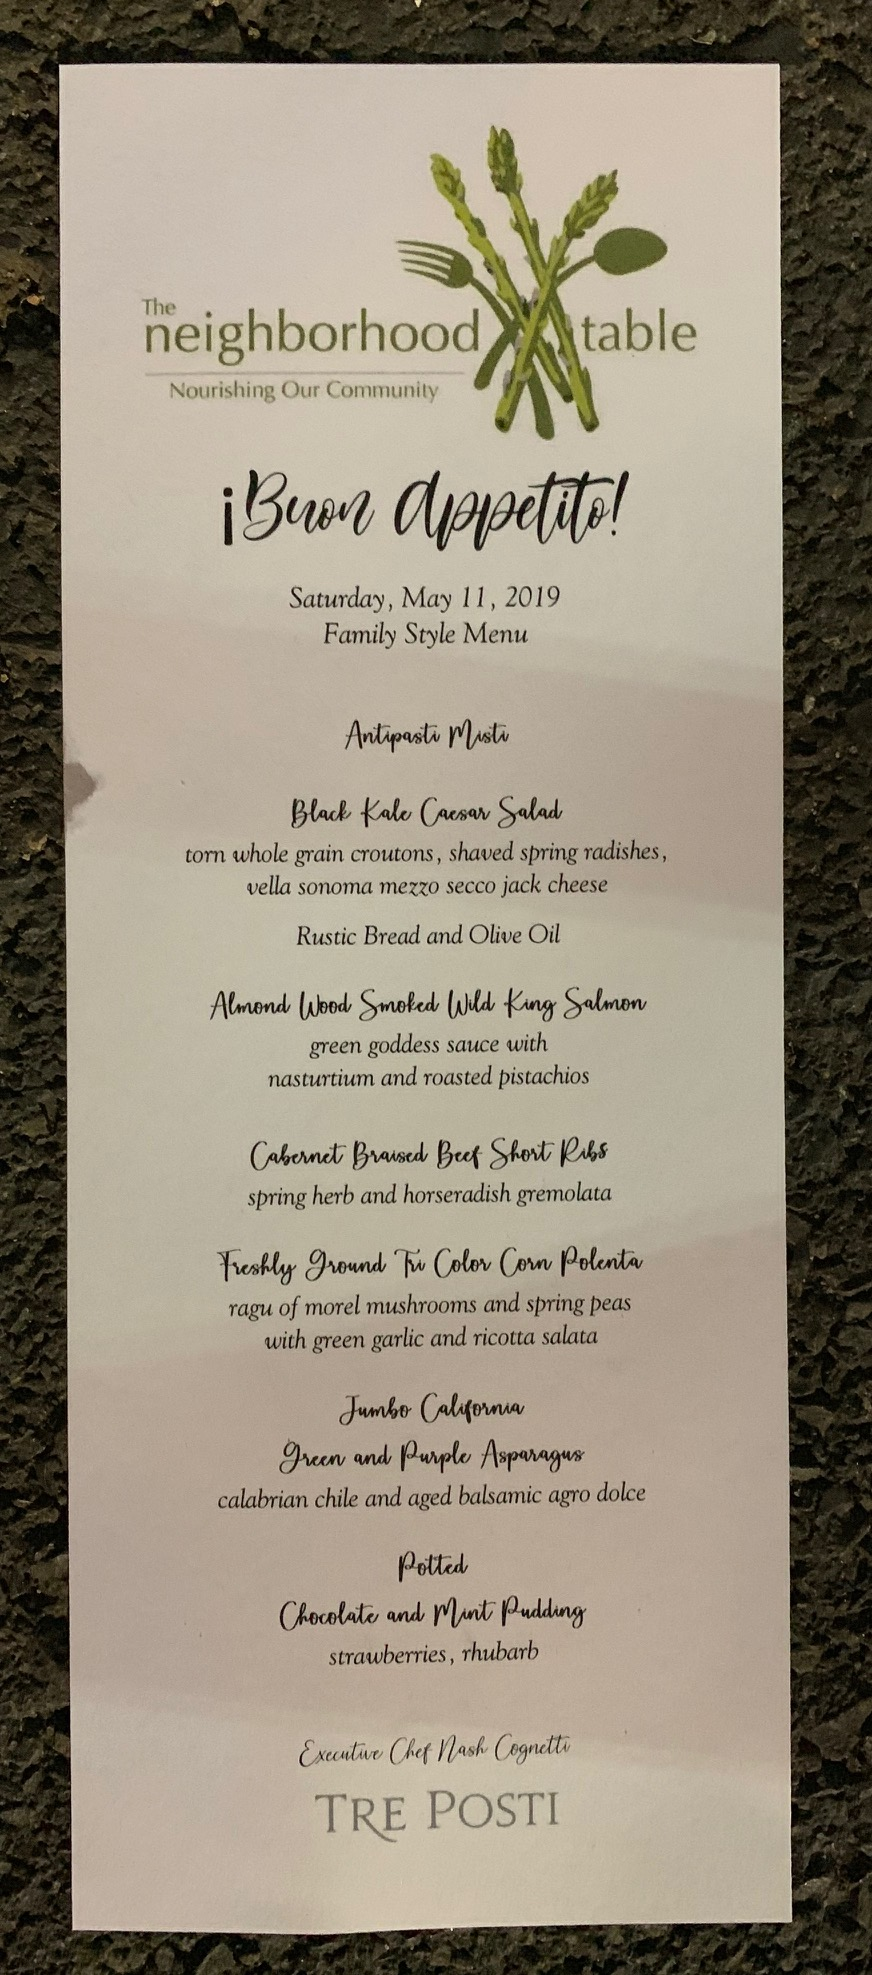 2019 St. Helena Neighborhood Table Dinner Dinner Manu